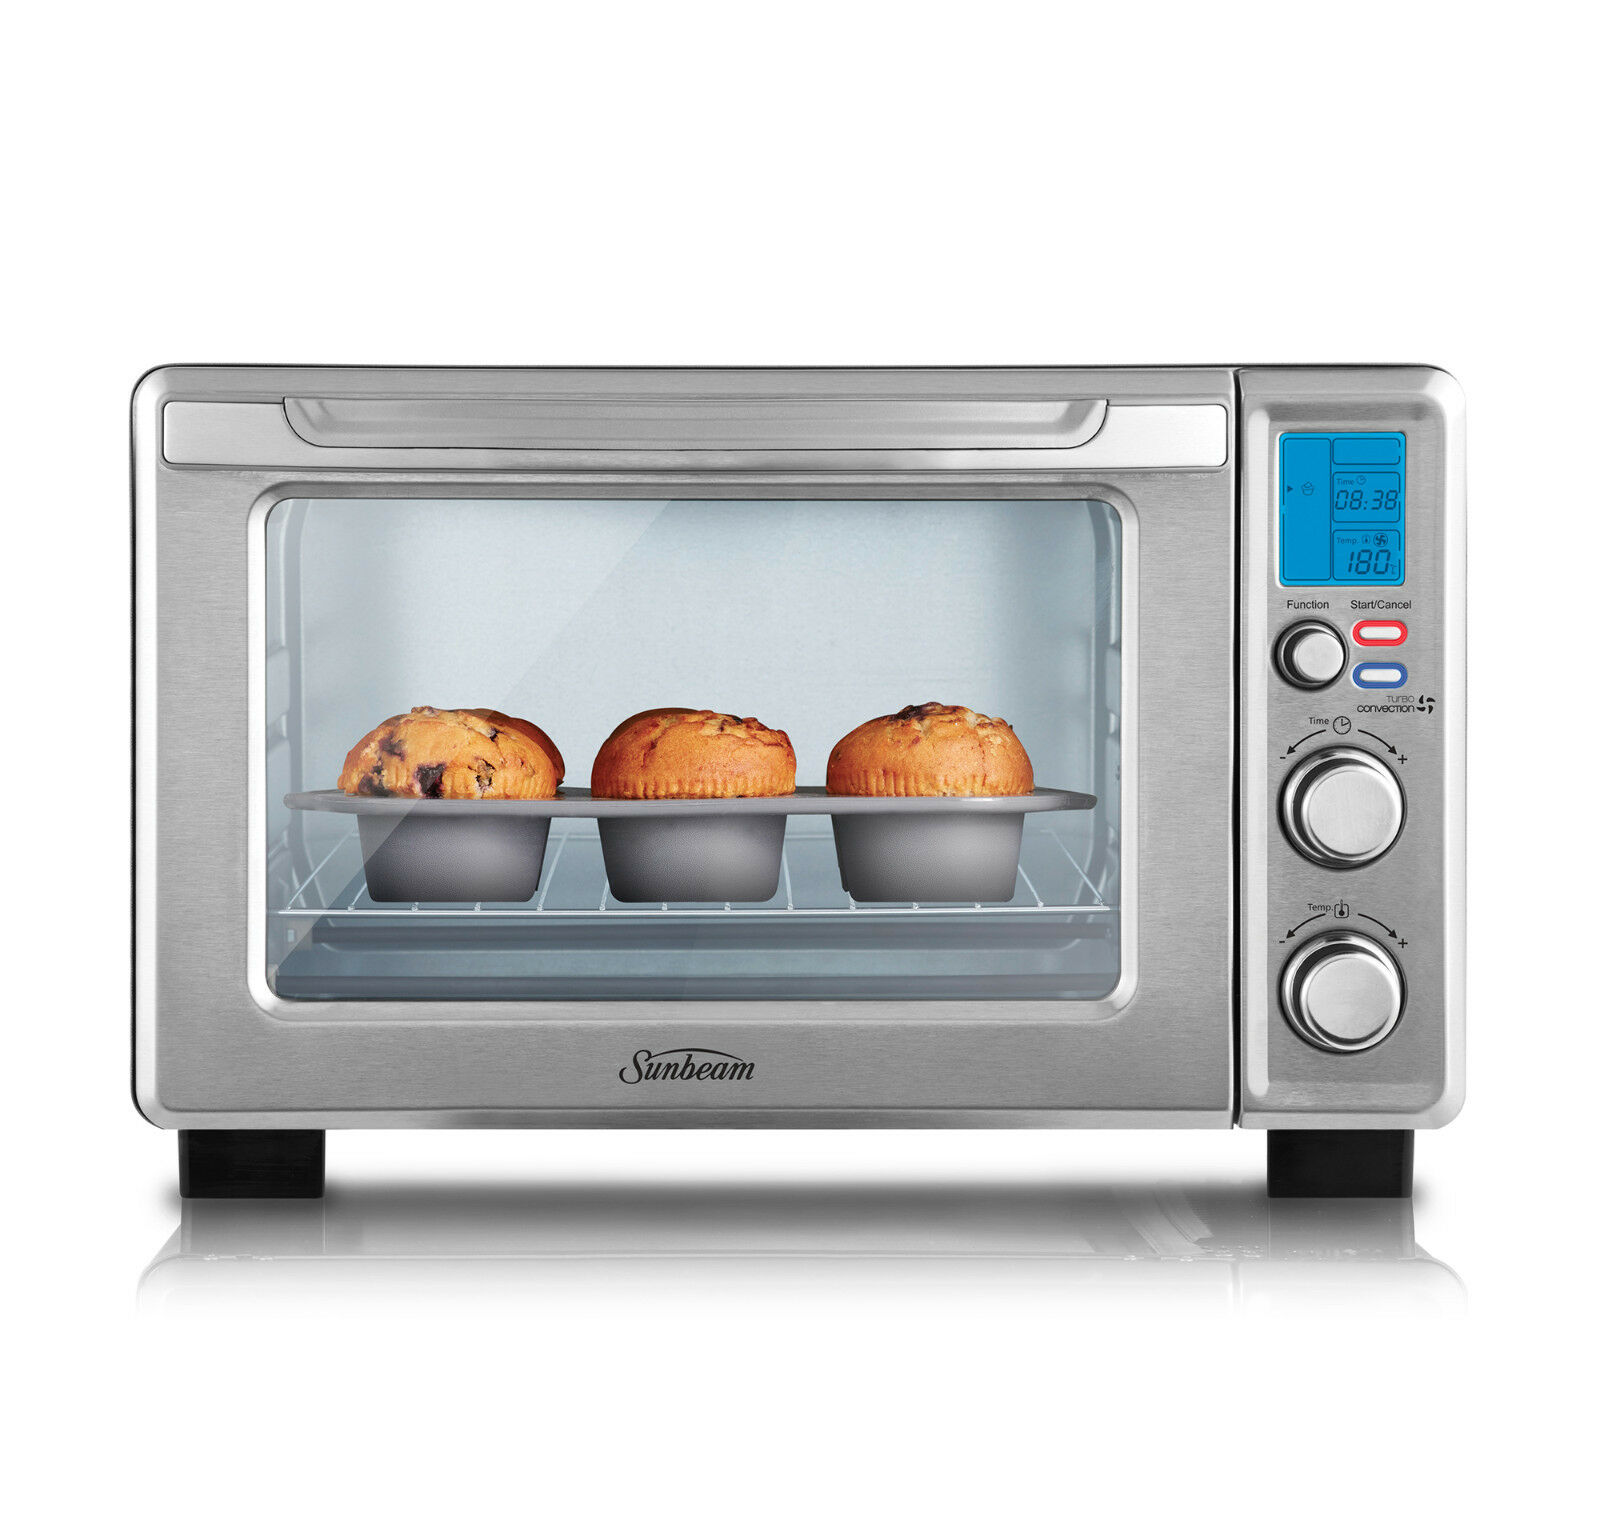 Sunbeam Co3000 Nutrioven Convection Oven With Bake Roast